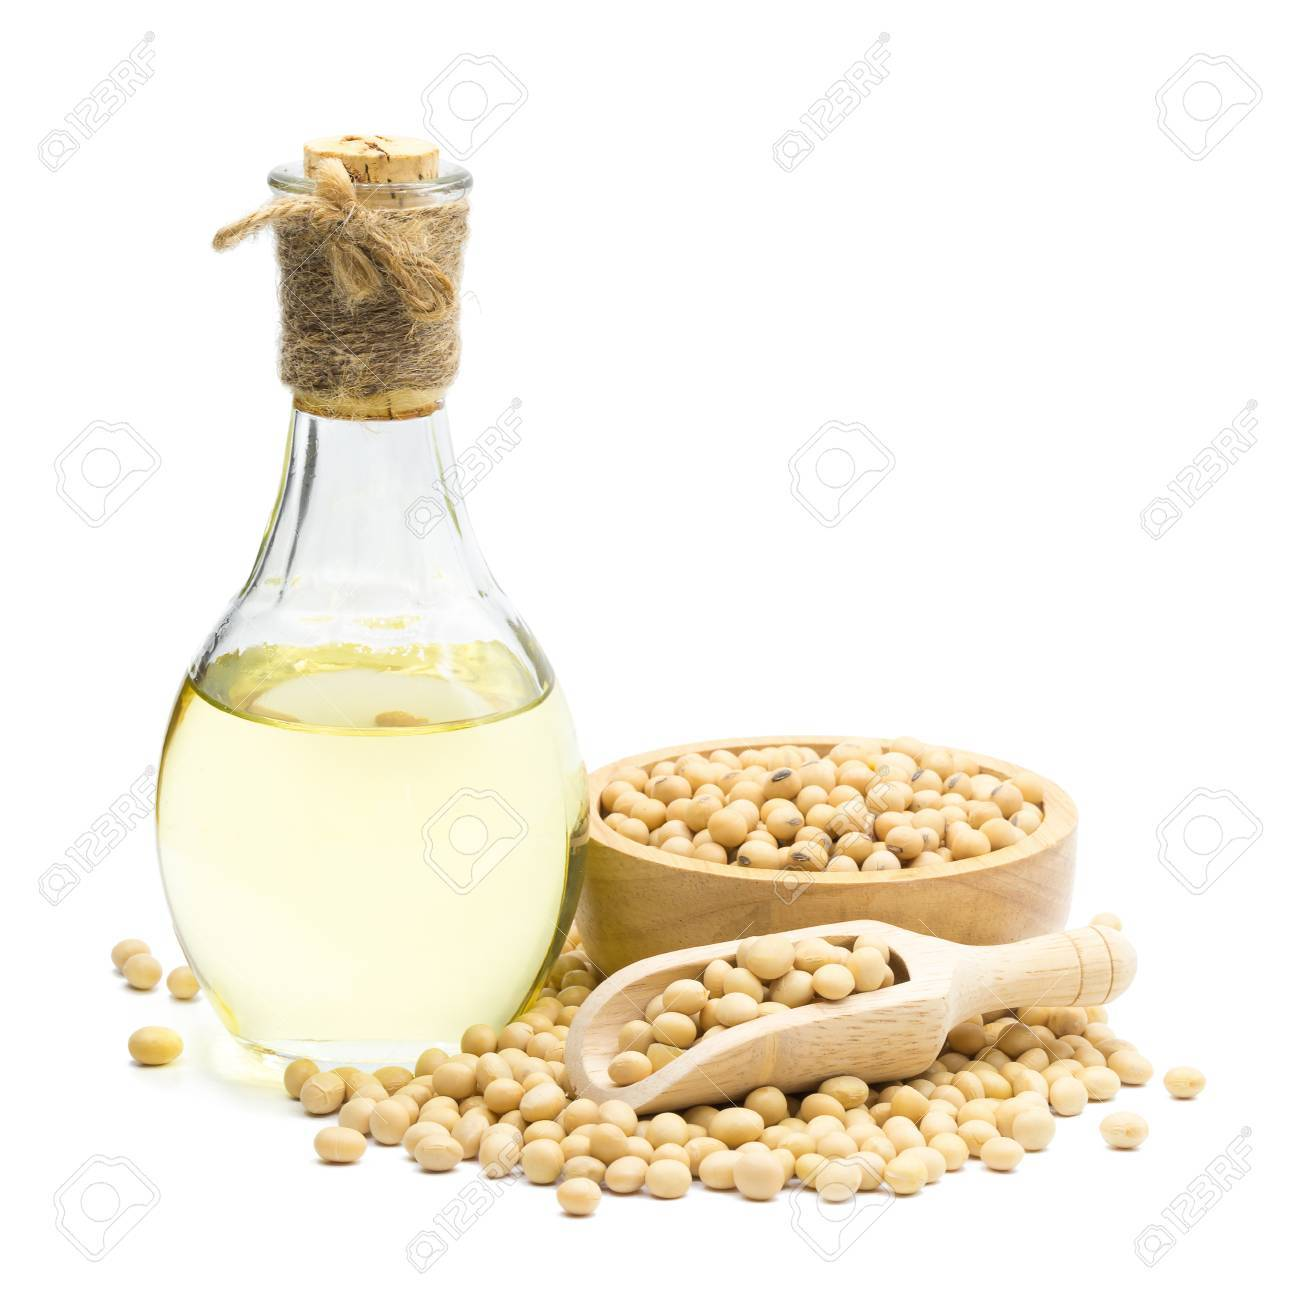 Soybean and Soybean oil bottle isolated on white background. - 84292358